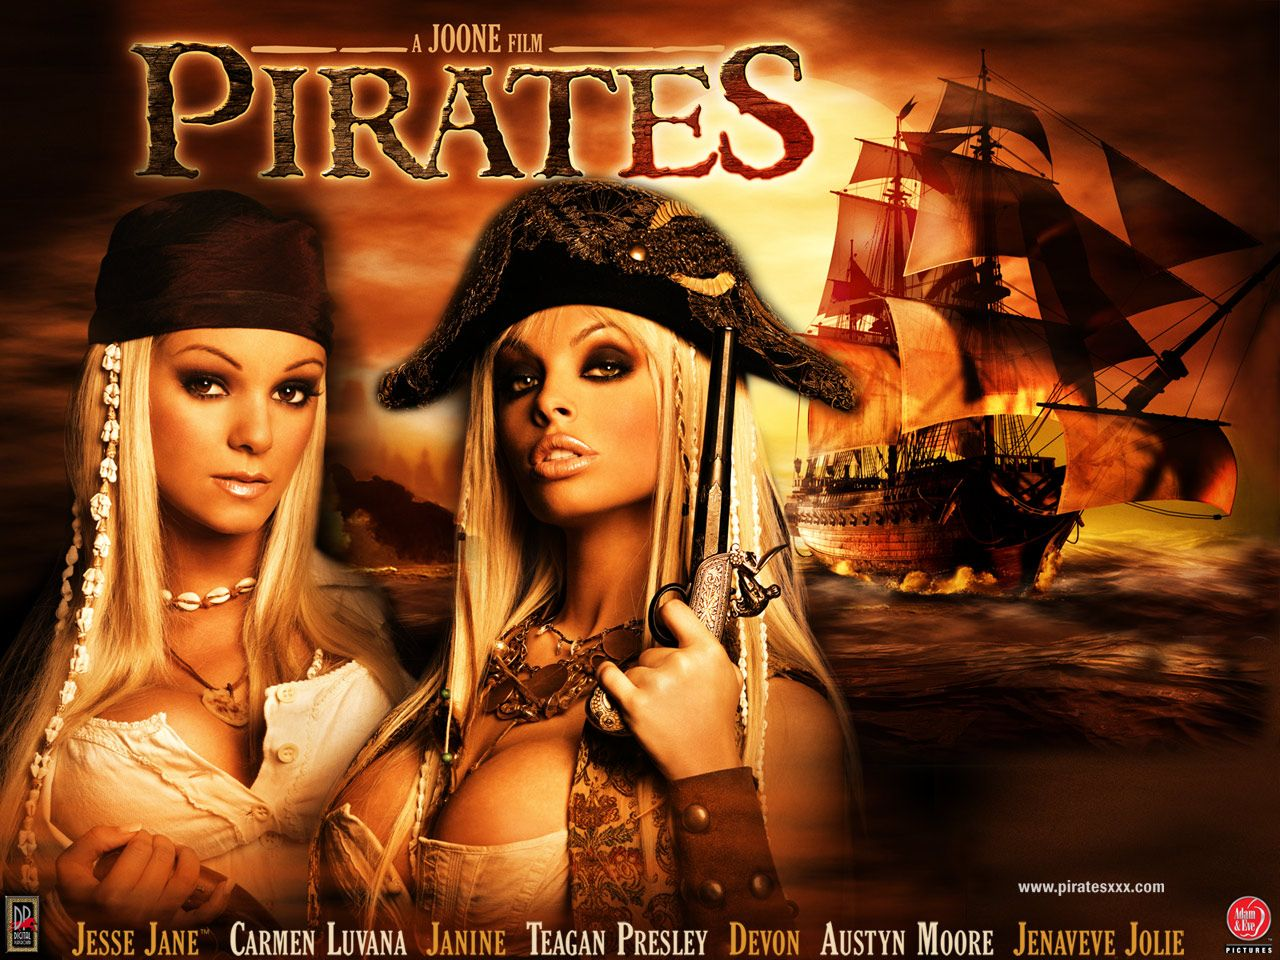 pirates movie porn dvd